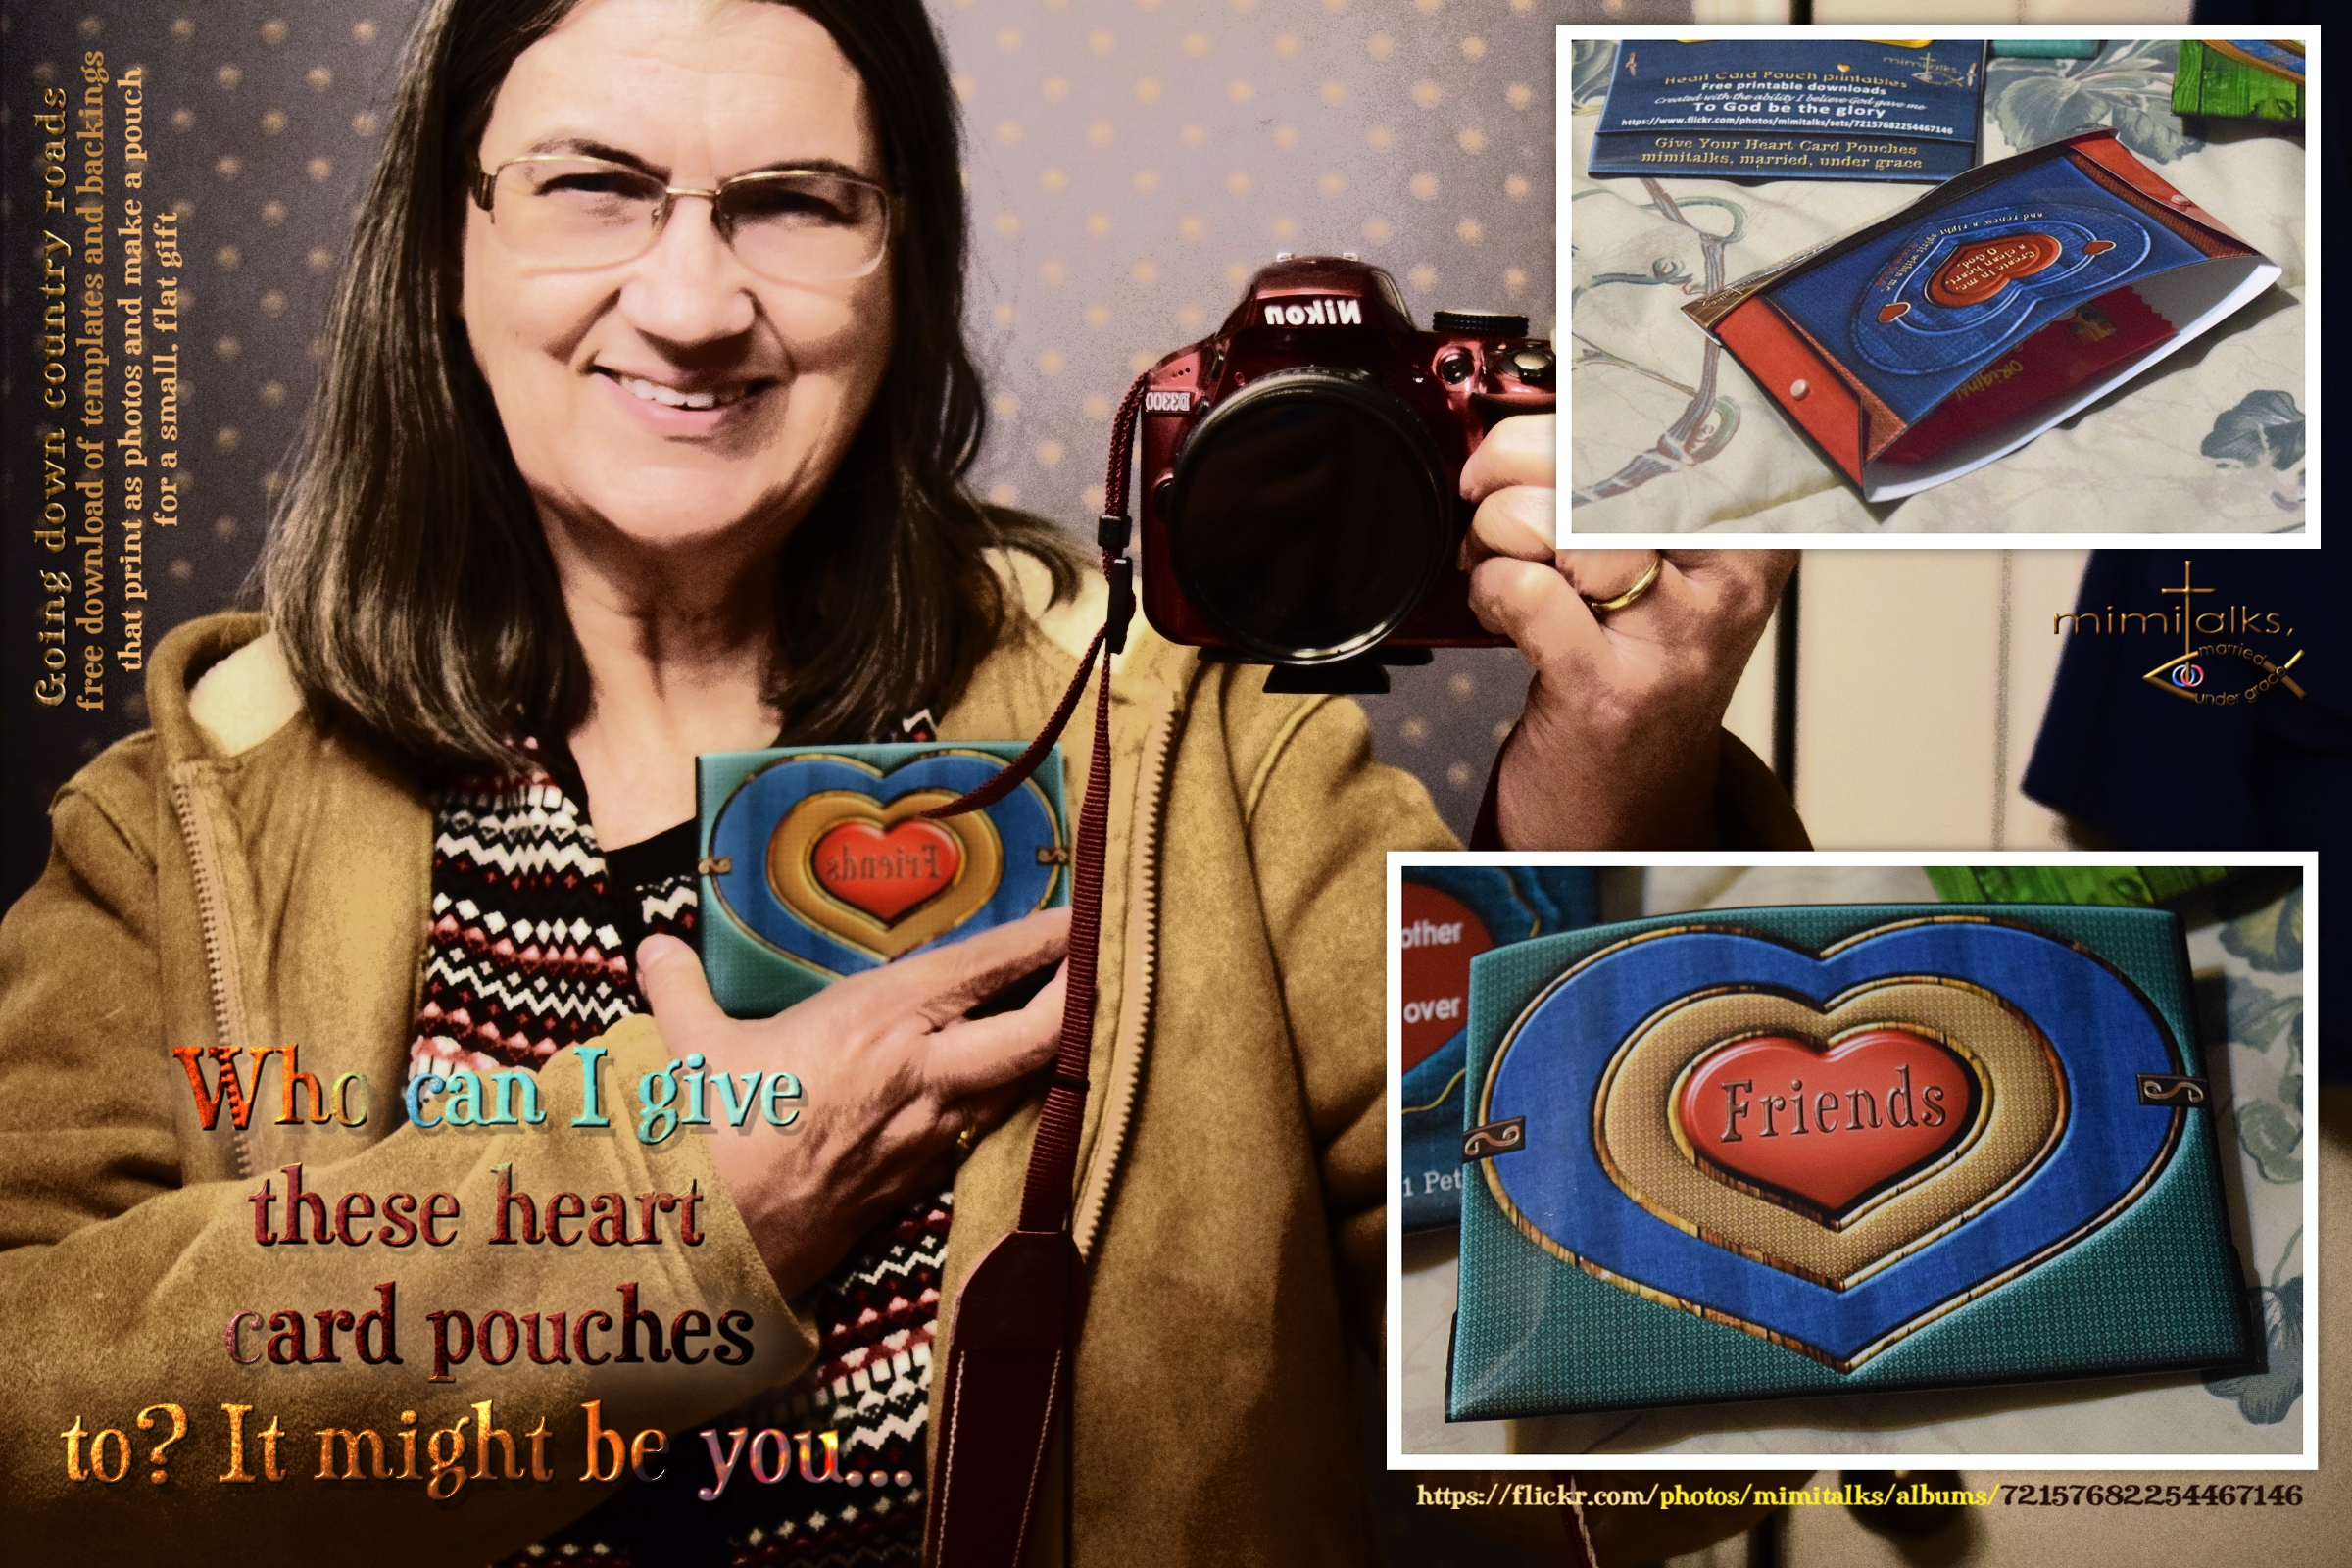 Who will come get them? Give your heart card pouches to make and give